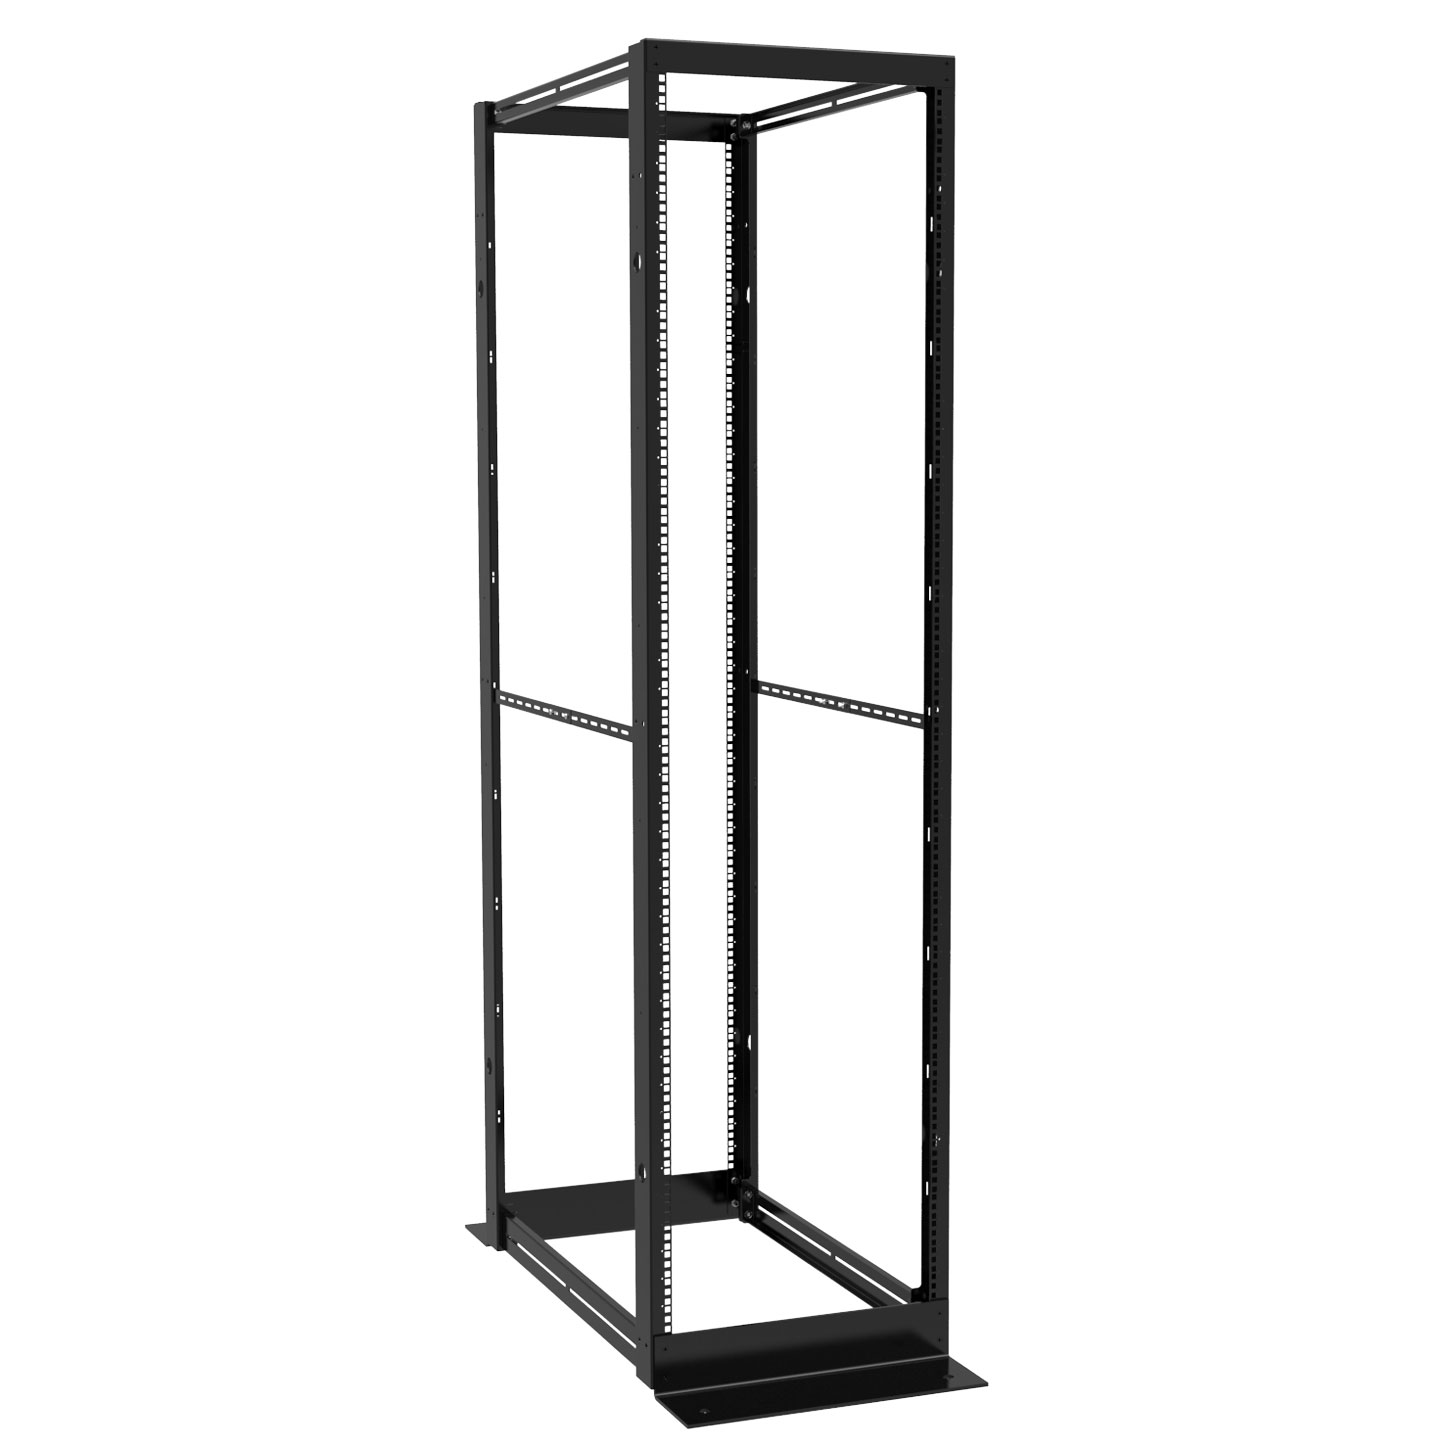 DC4R24 - DC4R Series Knockdown Steel 4-Post Rack DC4R Series